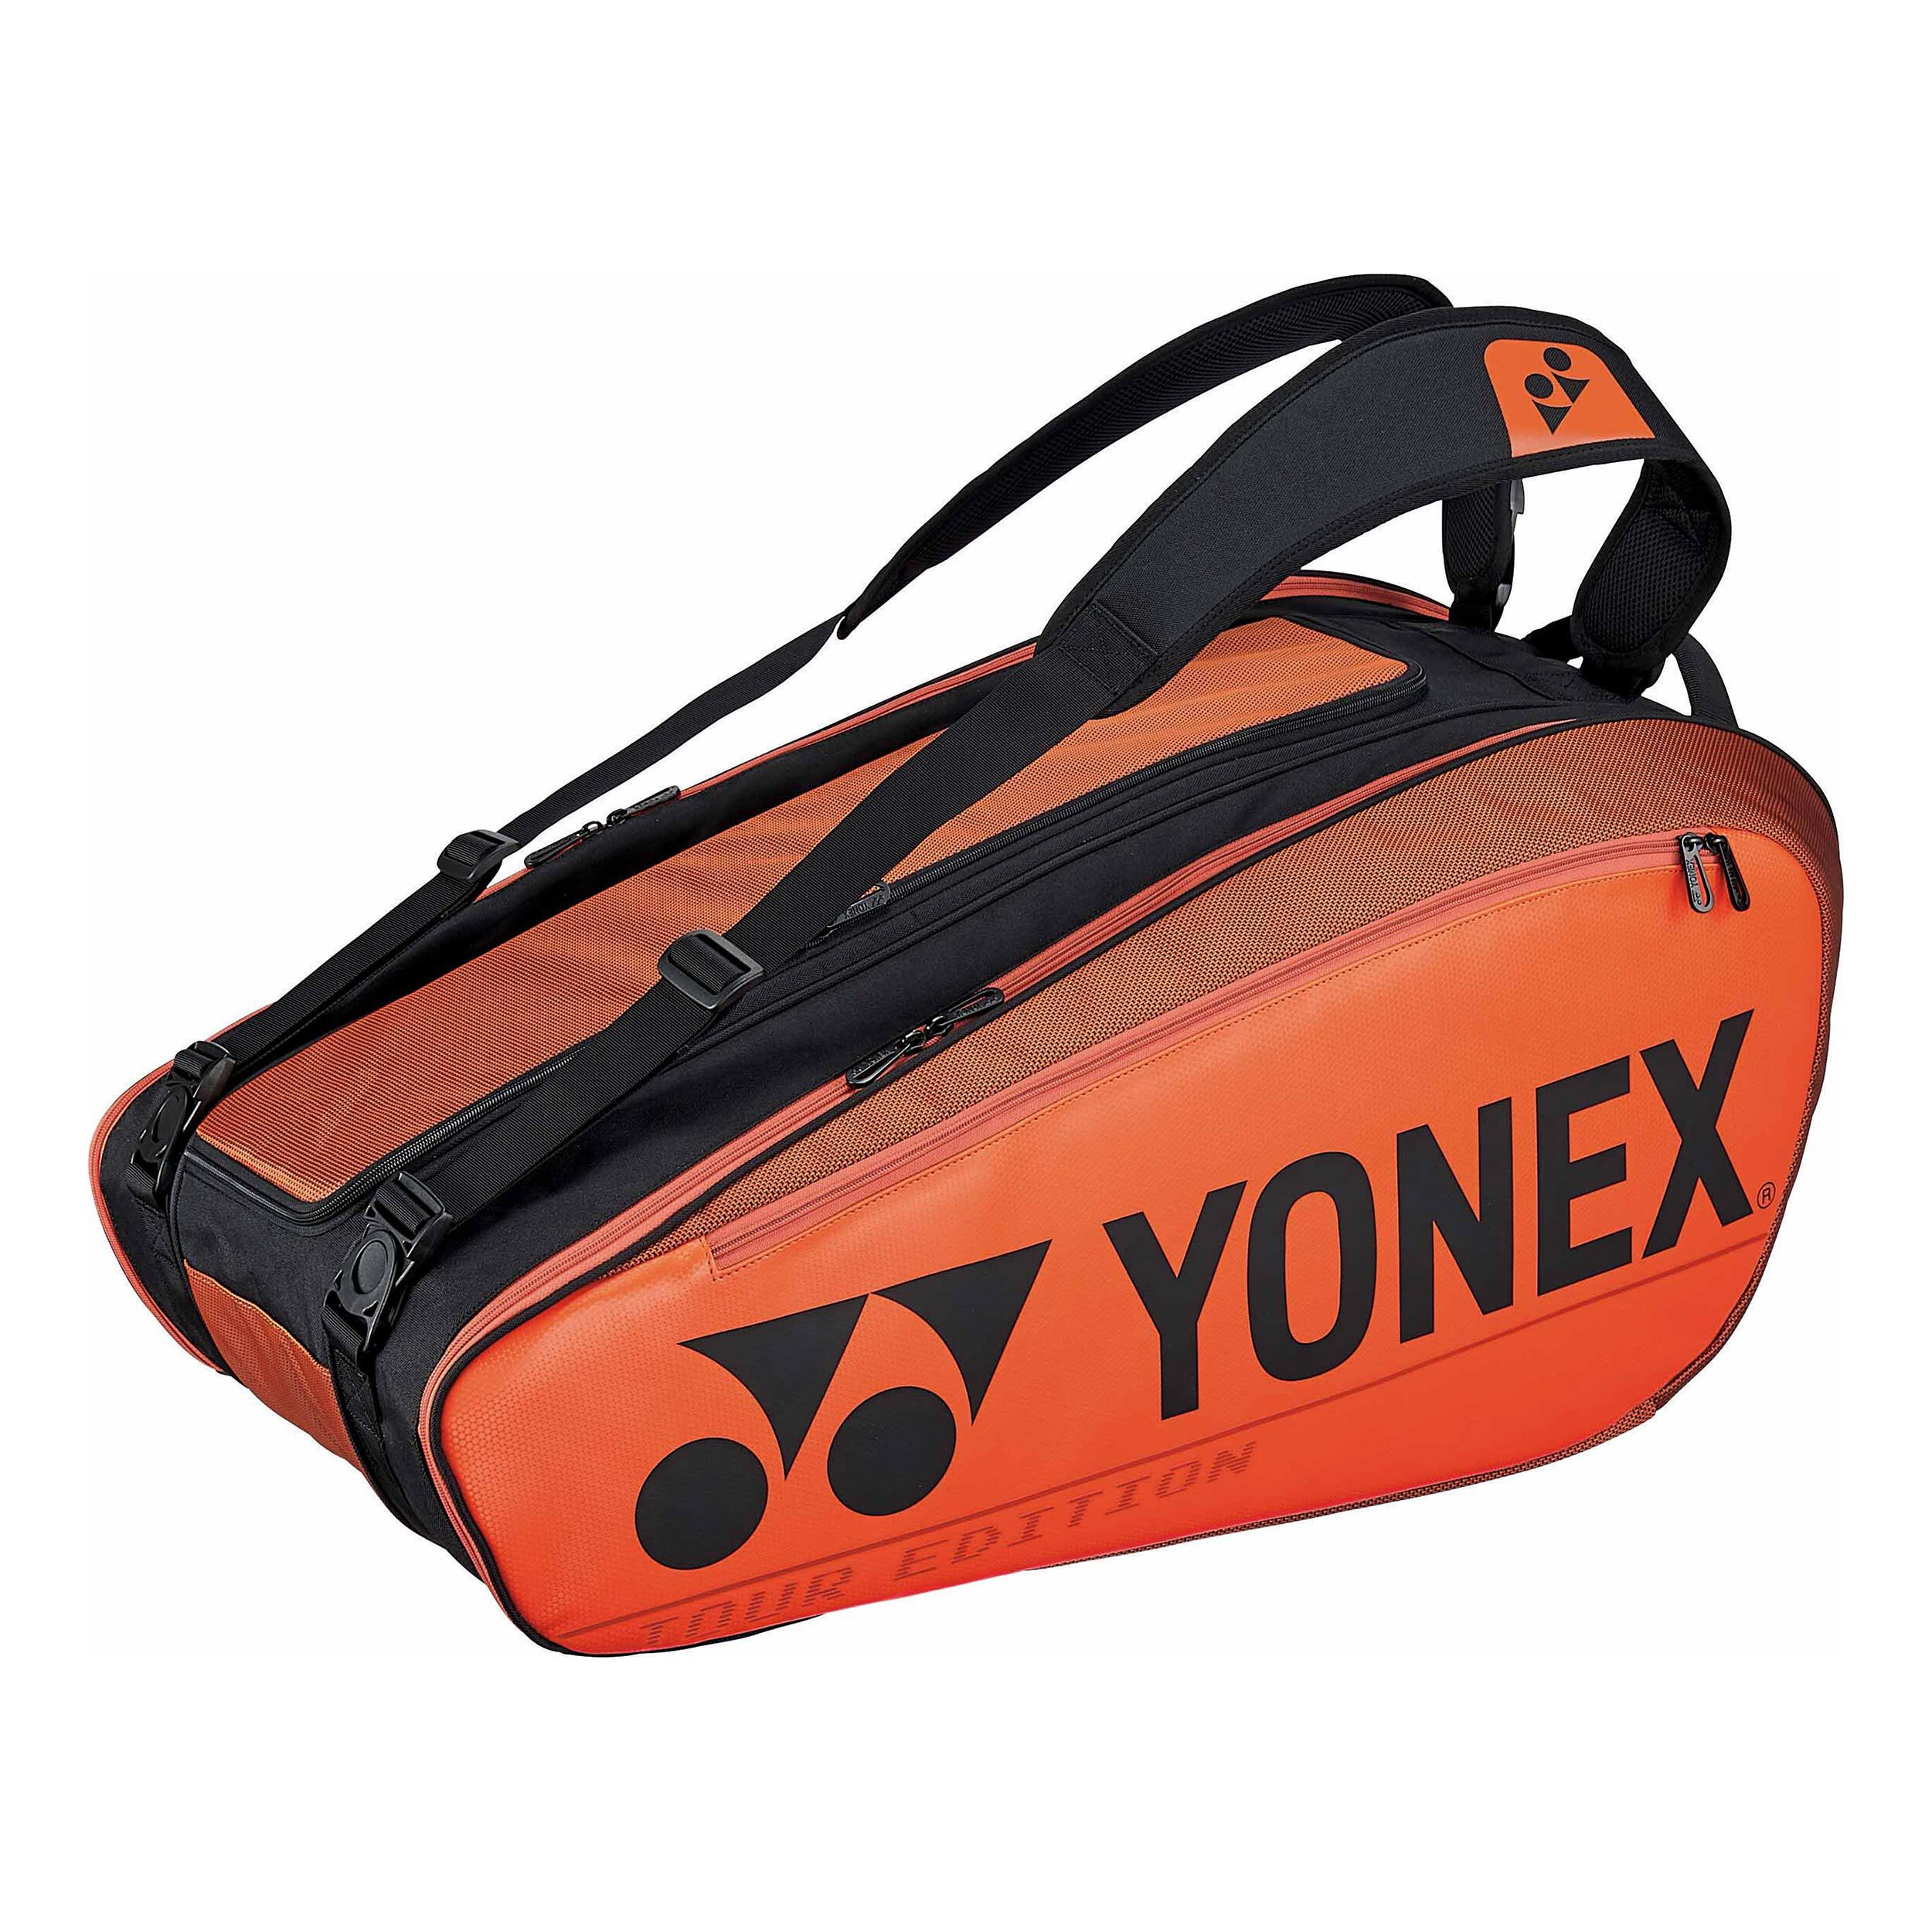 Yonex Pro Racket Bag Racketväska 9 Orange, Svart